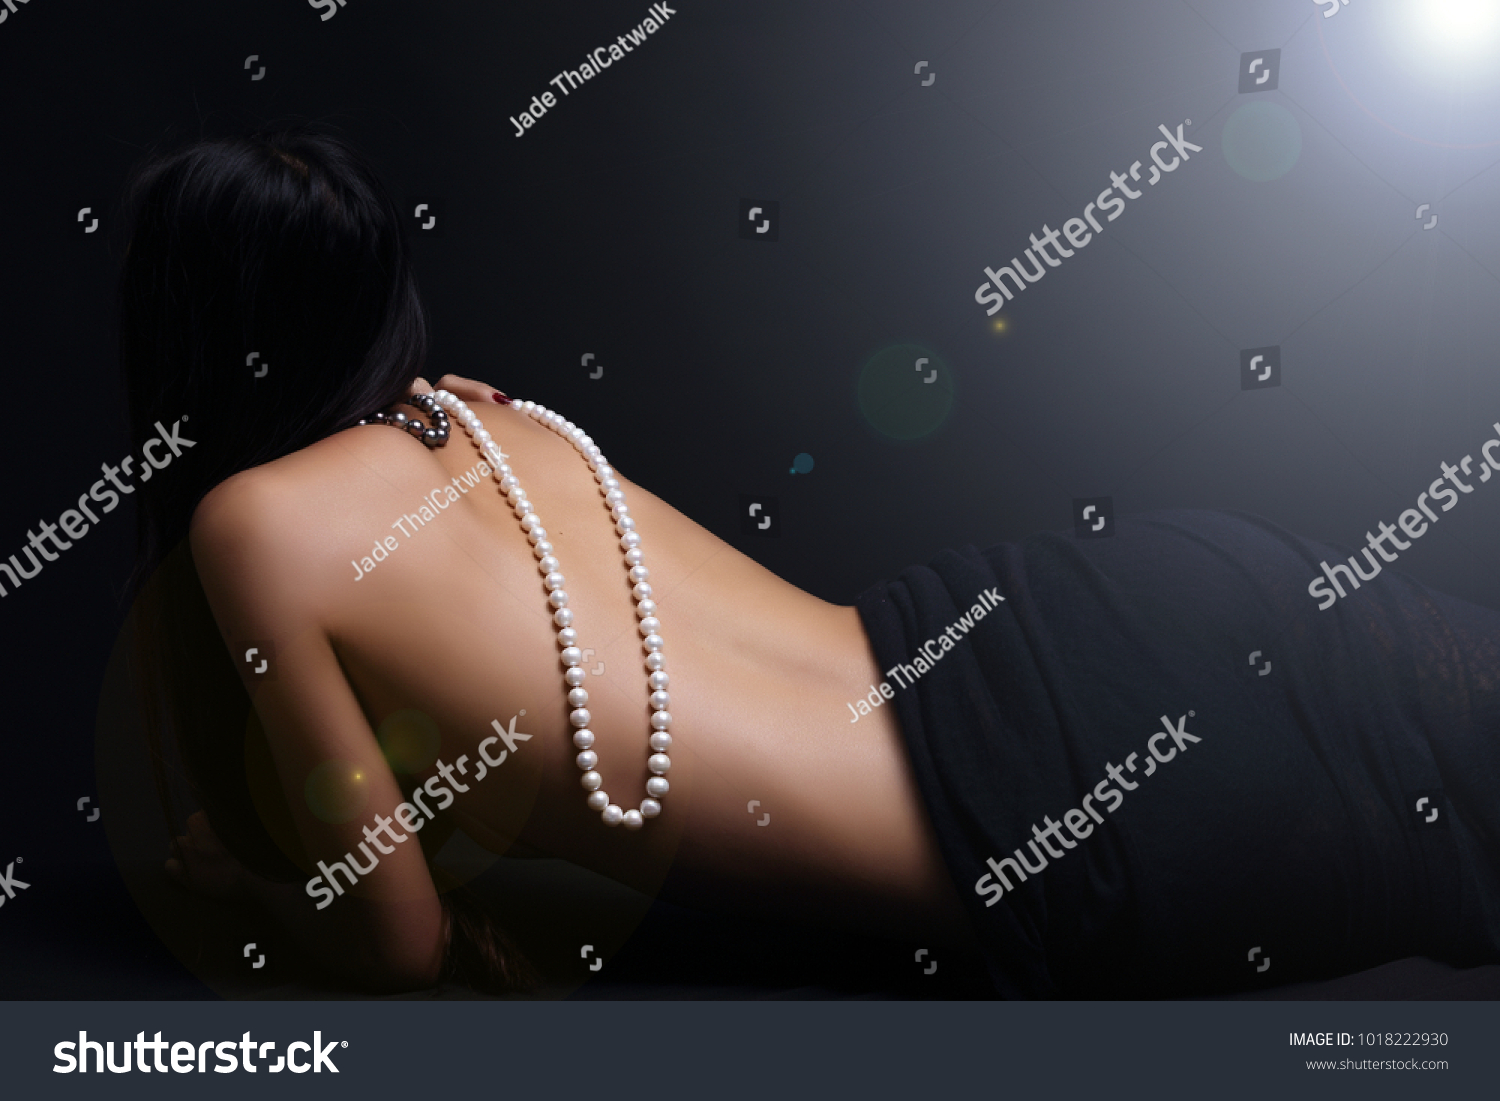 Nude girls with cross necklace apologise, but